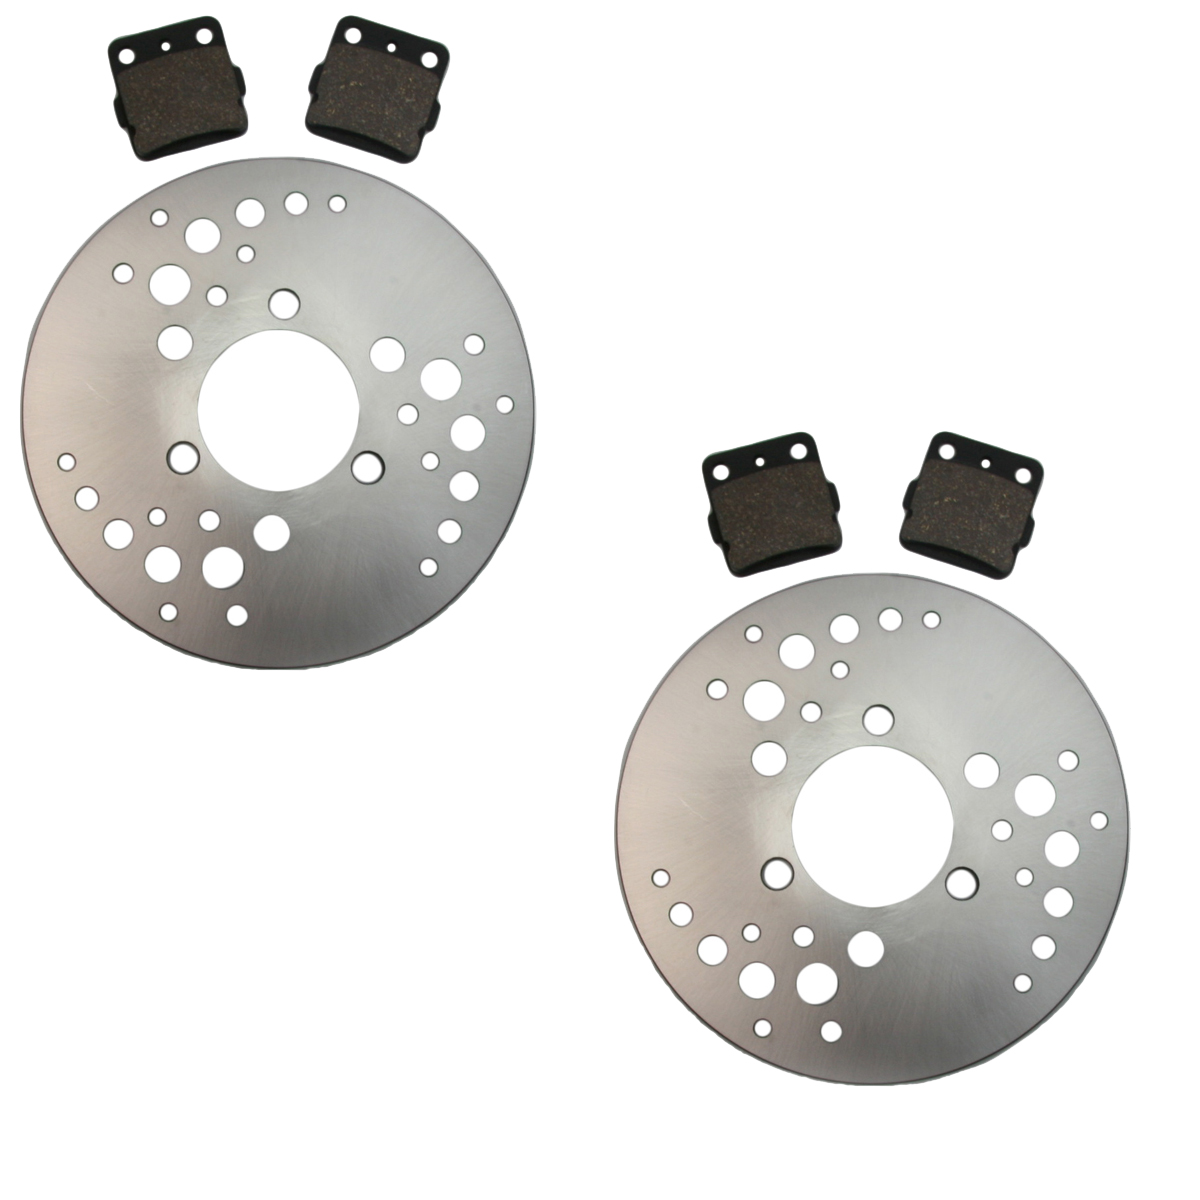 New Rear Brake Disc Brake Rotor For Honda TRX400EX TRX400X Sportrax 1999-2014